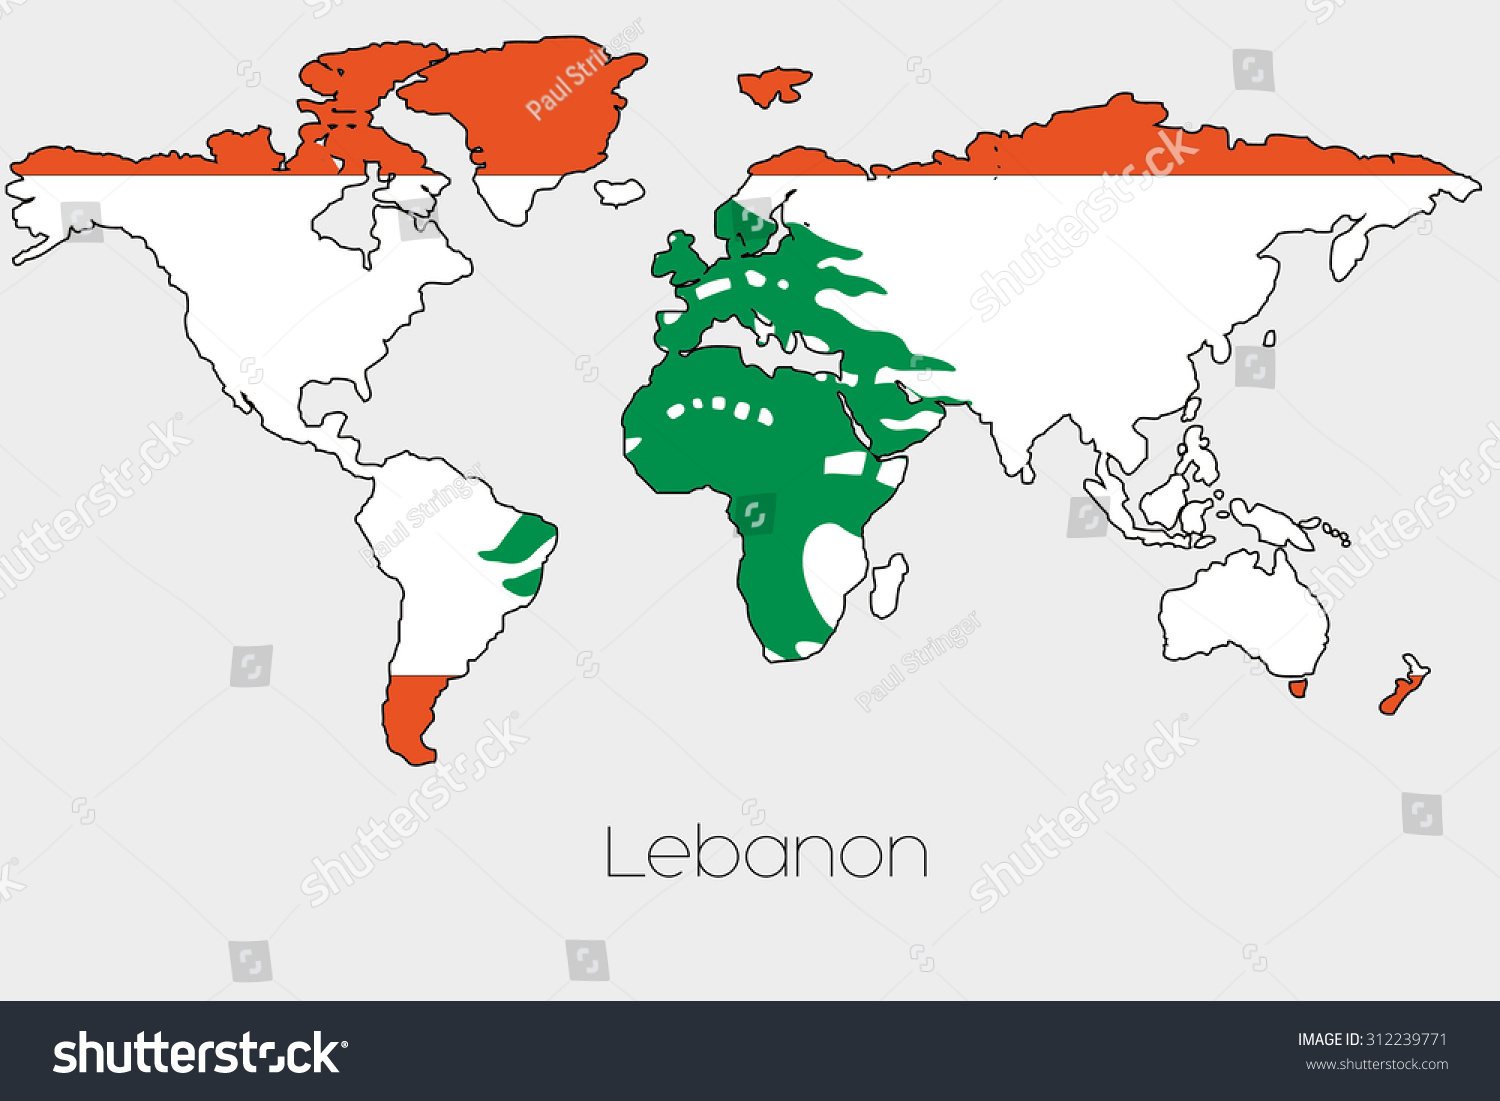 Flag illustration inside shape world map stock vector 312239771 a flag illustration inside the shape of a world map of the country of lebanon sciox Gallery